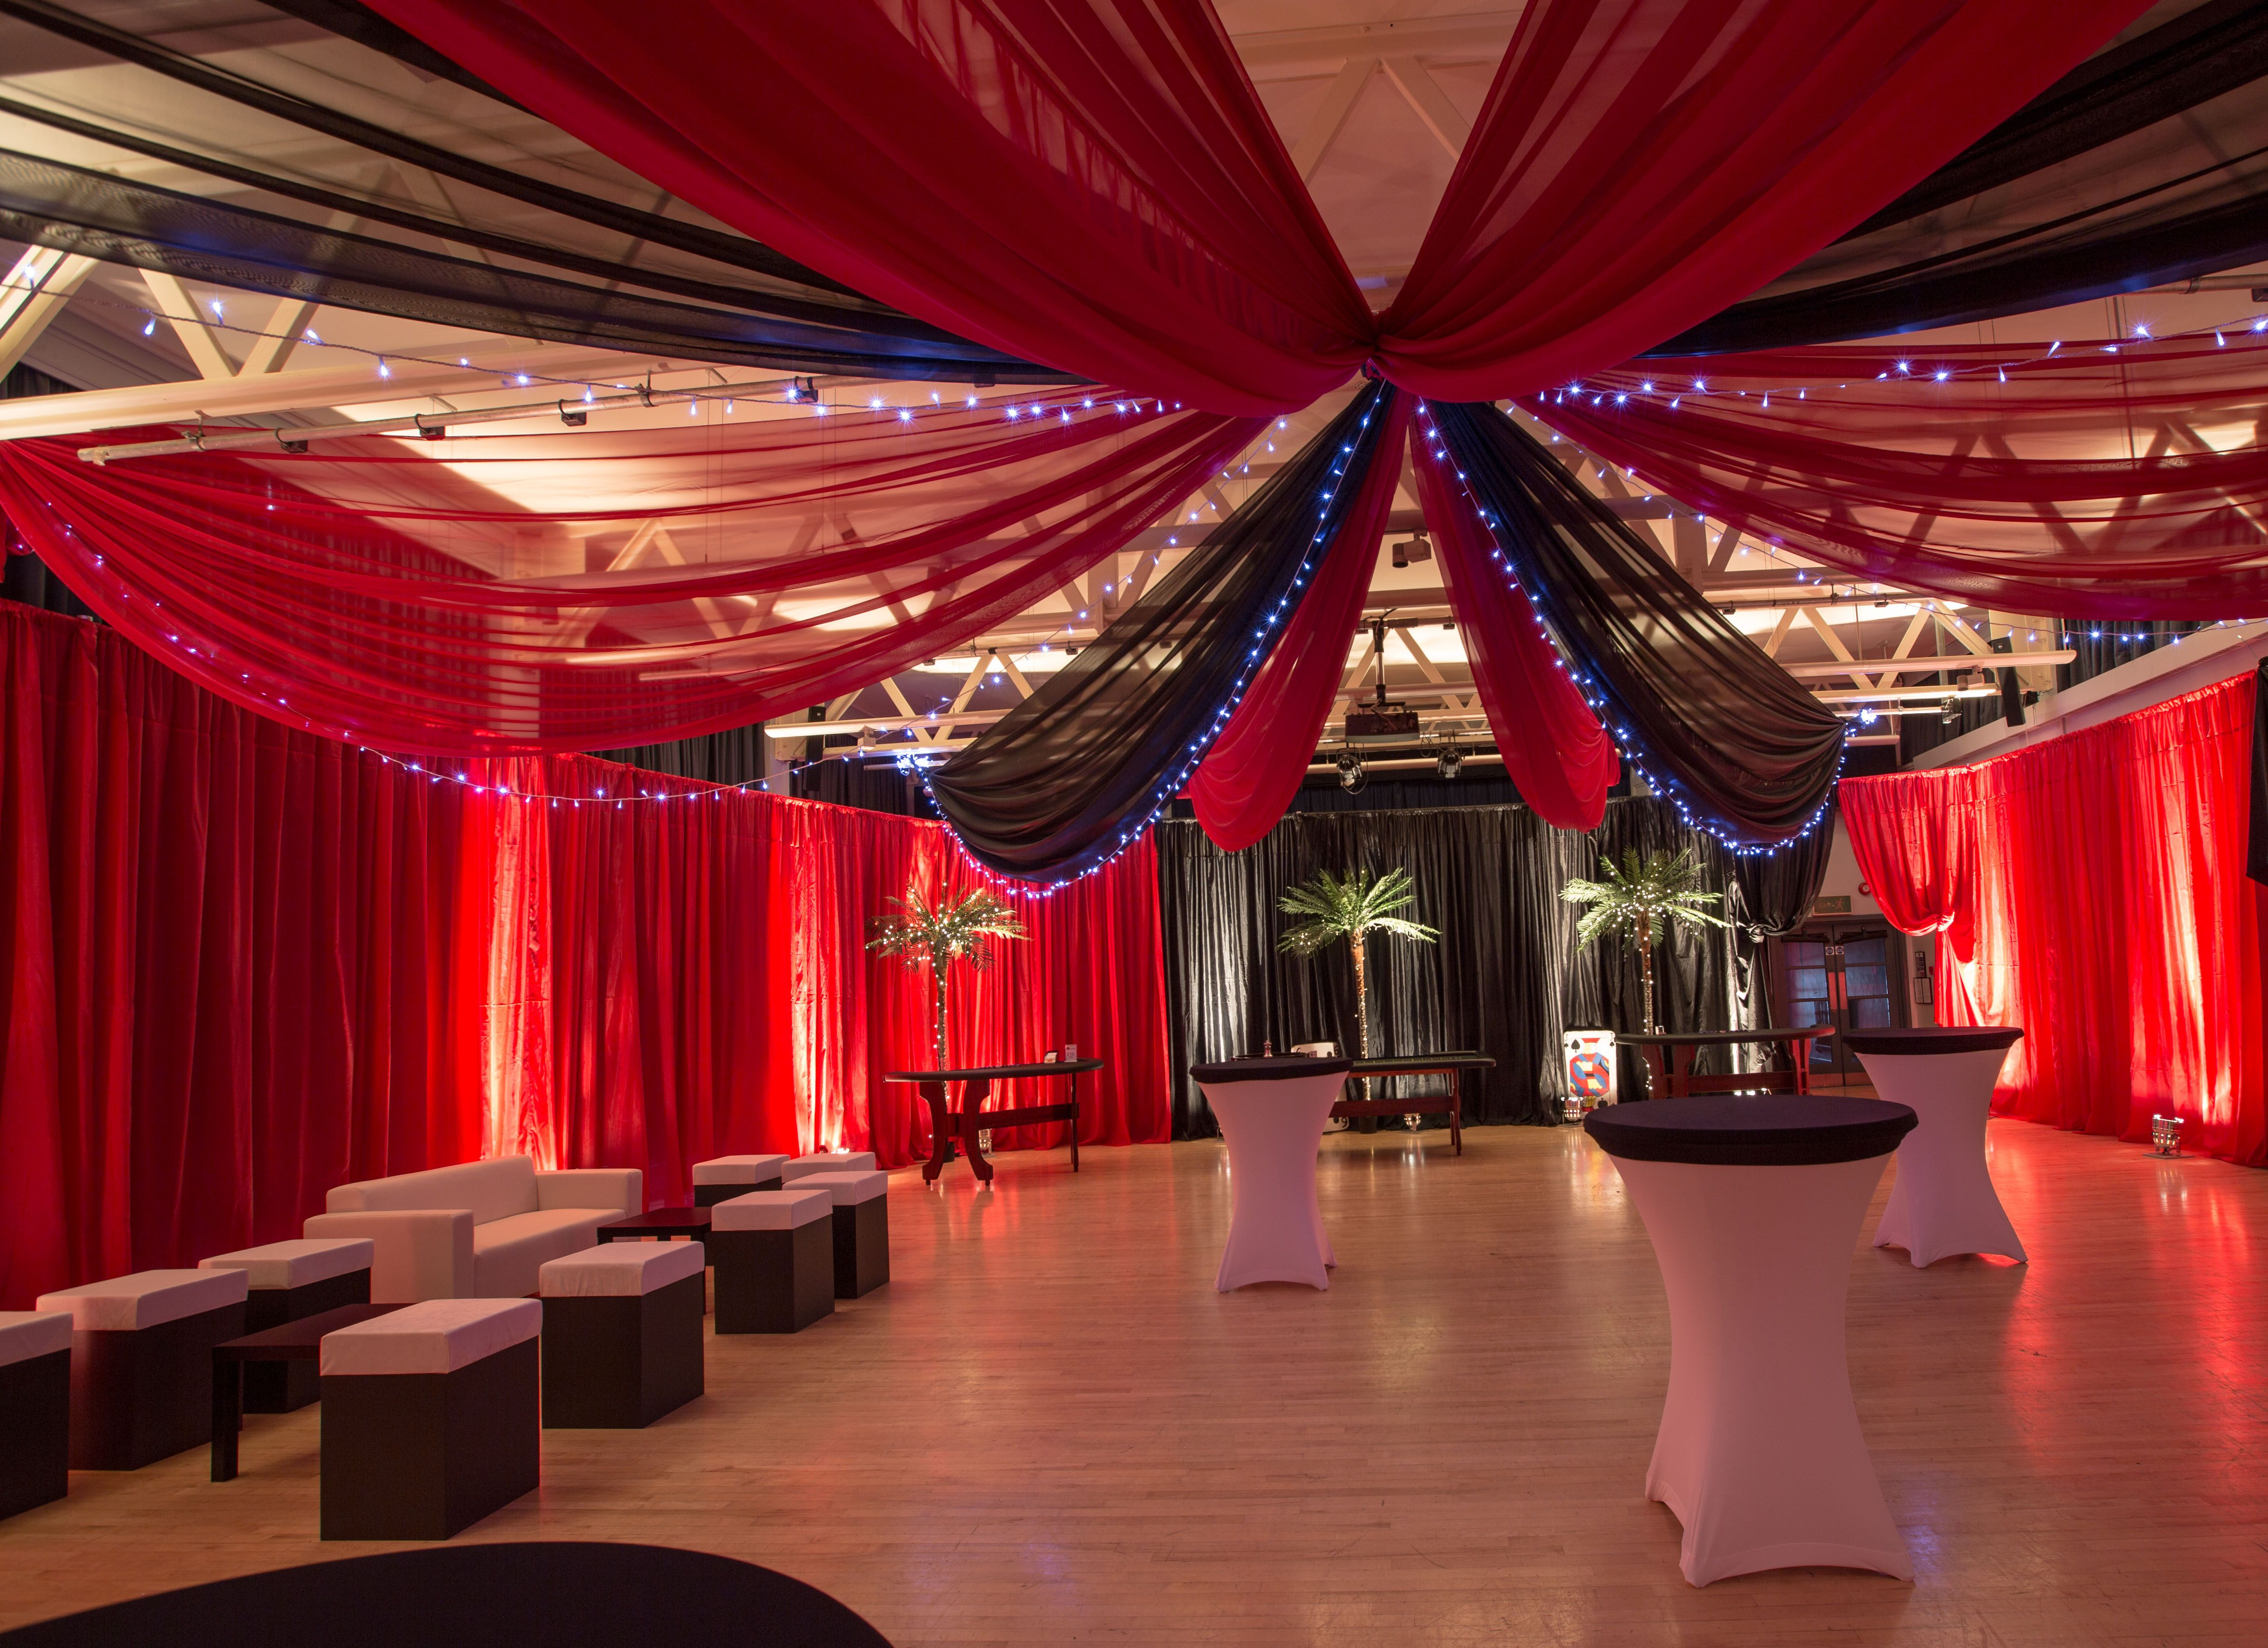 prom room merry decorations have hollywood decor